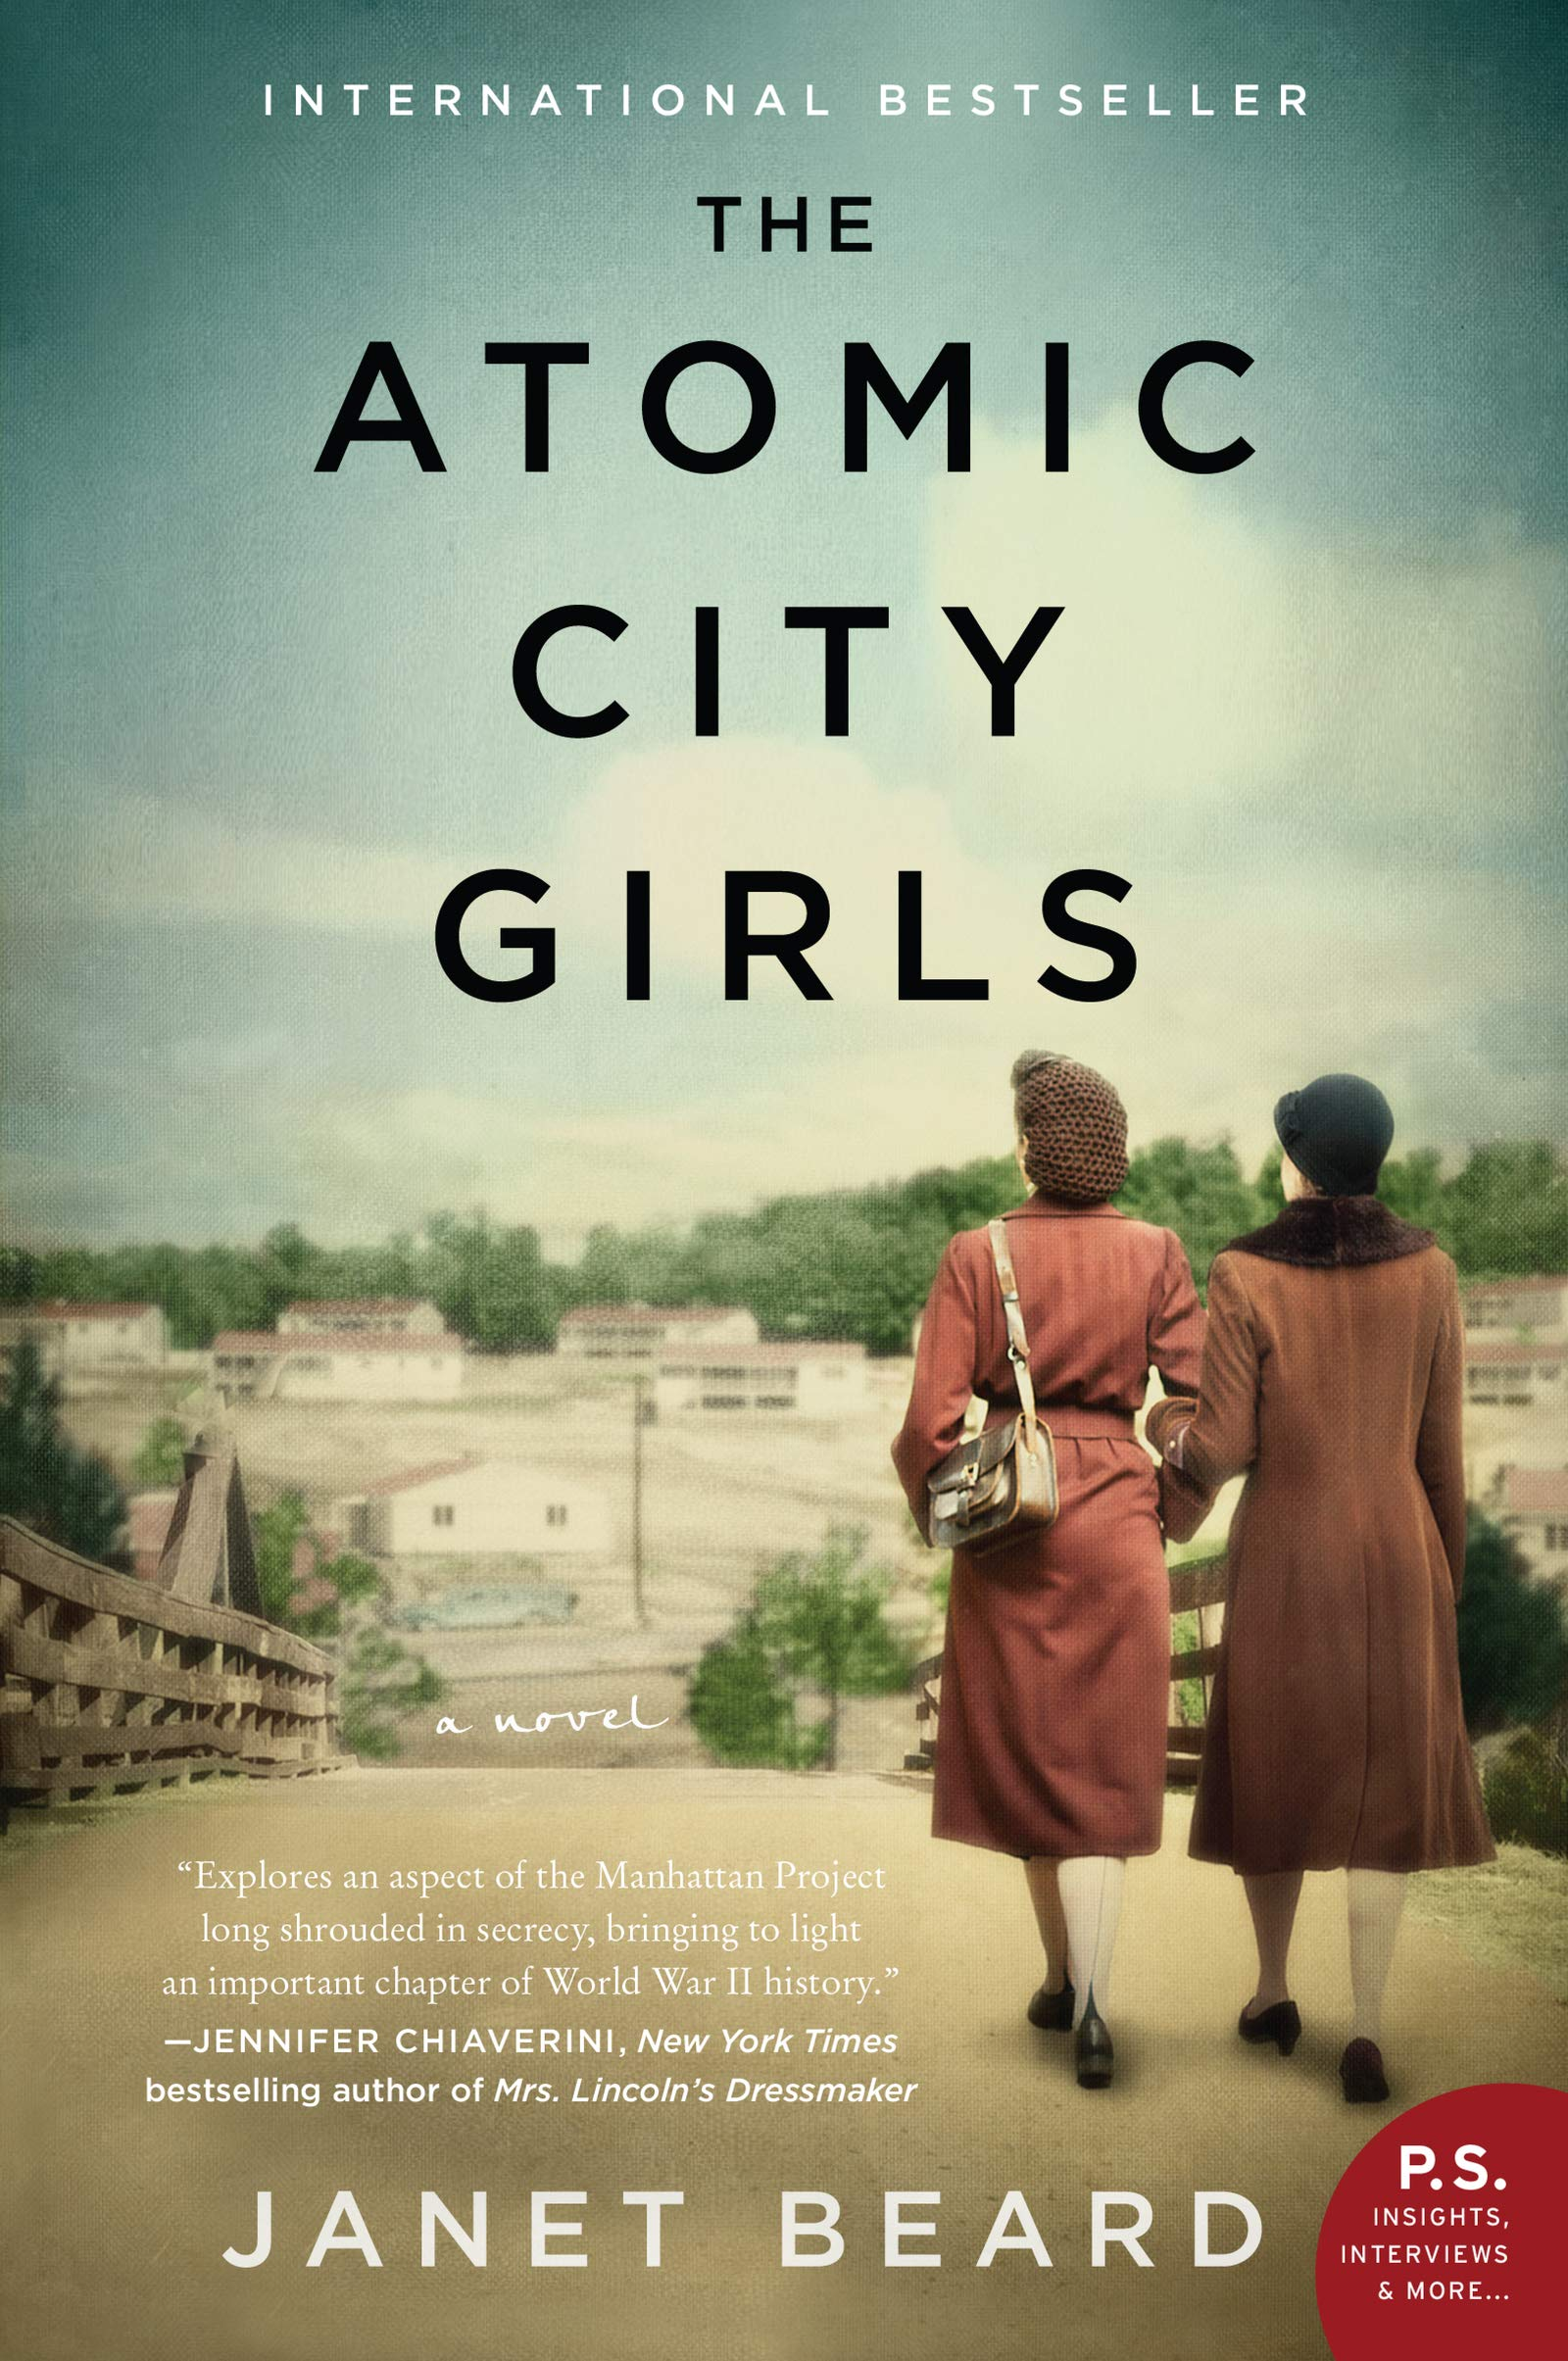 "In the bestselling tradition of  Hidden Figures  and  The Wives of Los Alamos,  comes this riveting novel of the everyday people who worked on the Manhattan Project during World War II.  ""What you see here, what you hear here, what you do here, let it stay here.""  In November 1944, eighteen-year-old June Walker boards an unmarked bus, destined for a city that doesn't officially exist. Oak Ridge, Tennessee has sprung up in a matter of months—a town of trailers and segregated houses, 24-hour cafeterias, and constant security checks. There, June joins hundreds of other young girls operating massive machines whose purpose is never explained. They know they are helping to win the war, but must ask no questions and reveal nothing to outsiders.  When the bombing of Hiroshima brings the truth about Oak Ridge into devastating focus, June must confront her ideals about loyalty, patriotism, and war itself.  "" The Atomic City Girls  is a fascinating and compelling novel about a little-known piece of WWII history.""—Maggie Leffler, international bestselling author  (Globe and Mail) of The Secrets of Flight"